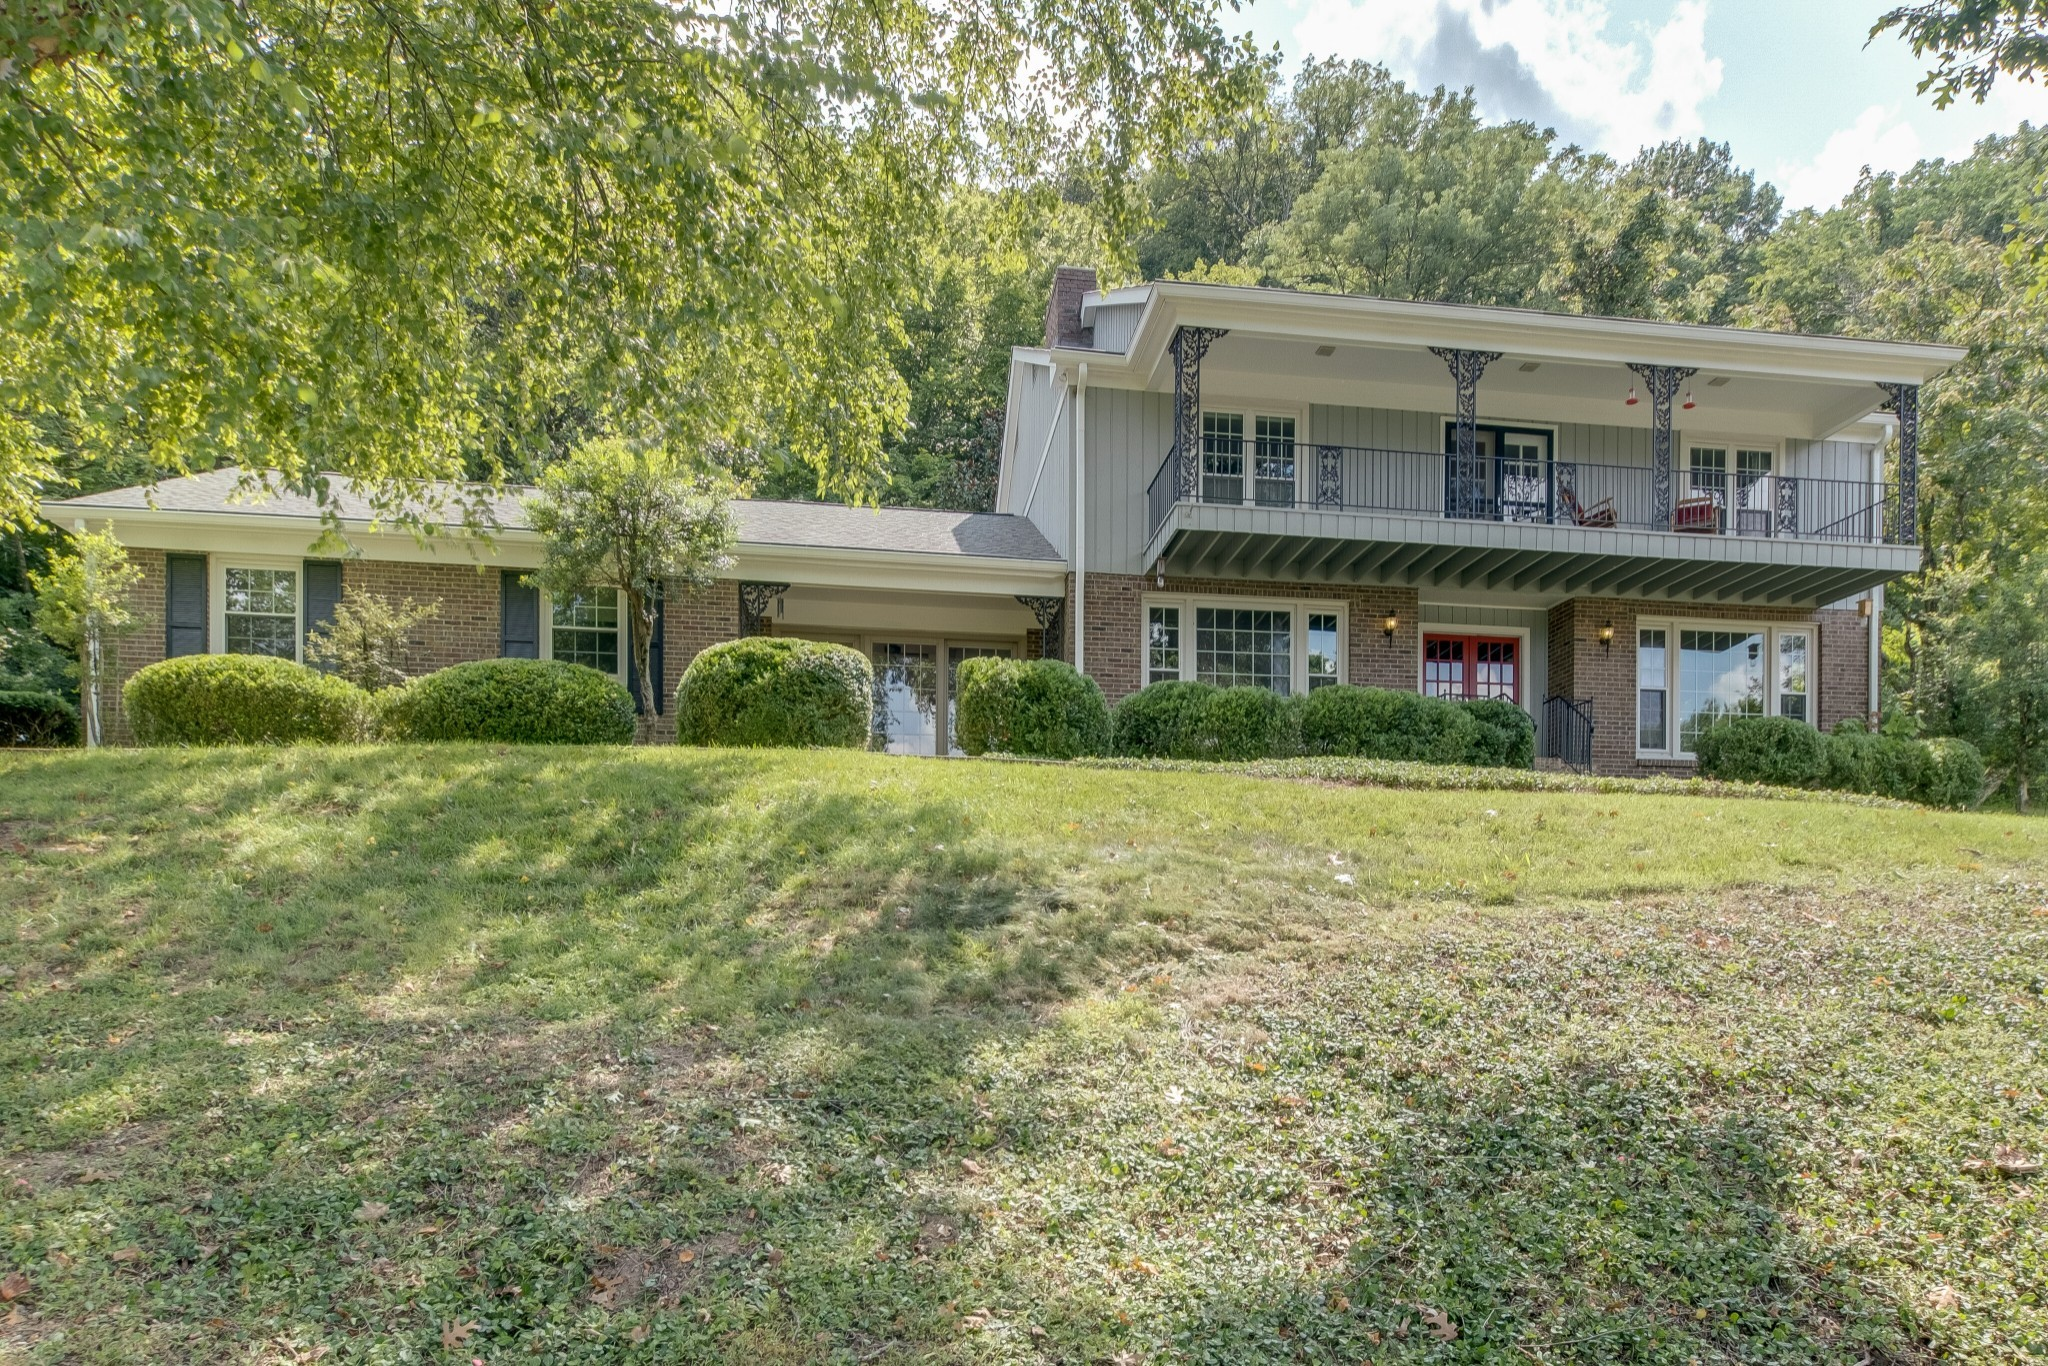 Treed cul-de-sac.Glorious Views. Fabulous granite gourmet kitchen w/wet bar.. Entertainers delight..Updated baths. Hrdwd floors. Ext. paint 2020. Vaulted Den w/ huge brick FP. Replaced windows. Living room makes great office. Full wall of closets in Primary BR. Major remodel 2015.  Upstairs landing useable space. Lovely patio area - country-like setting. Large grassy area in back. Relax on balcony. Irriga system. Near Radnor Lake. Convenient location/